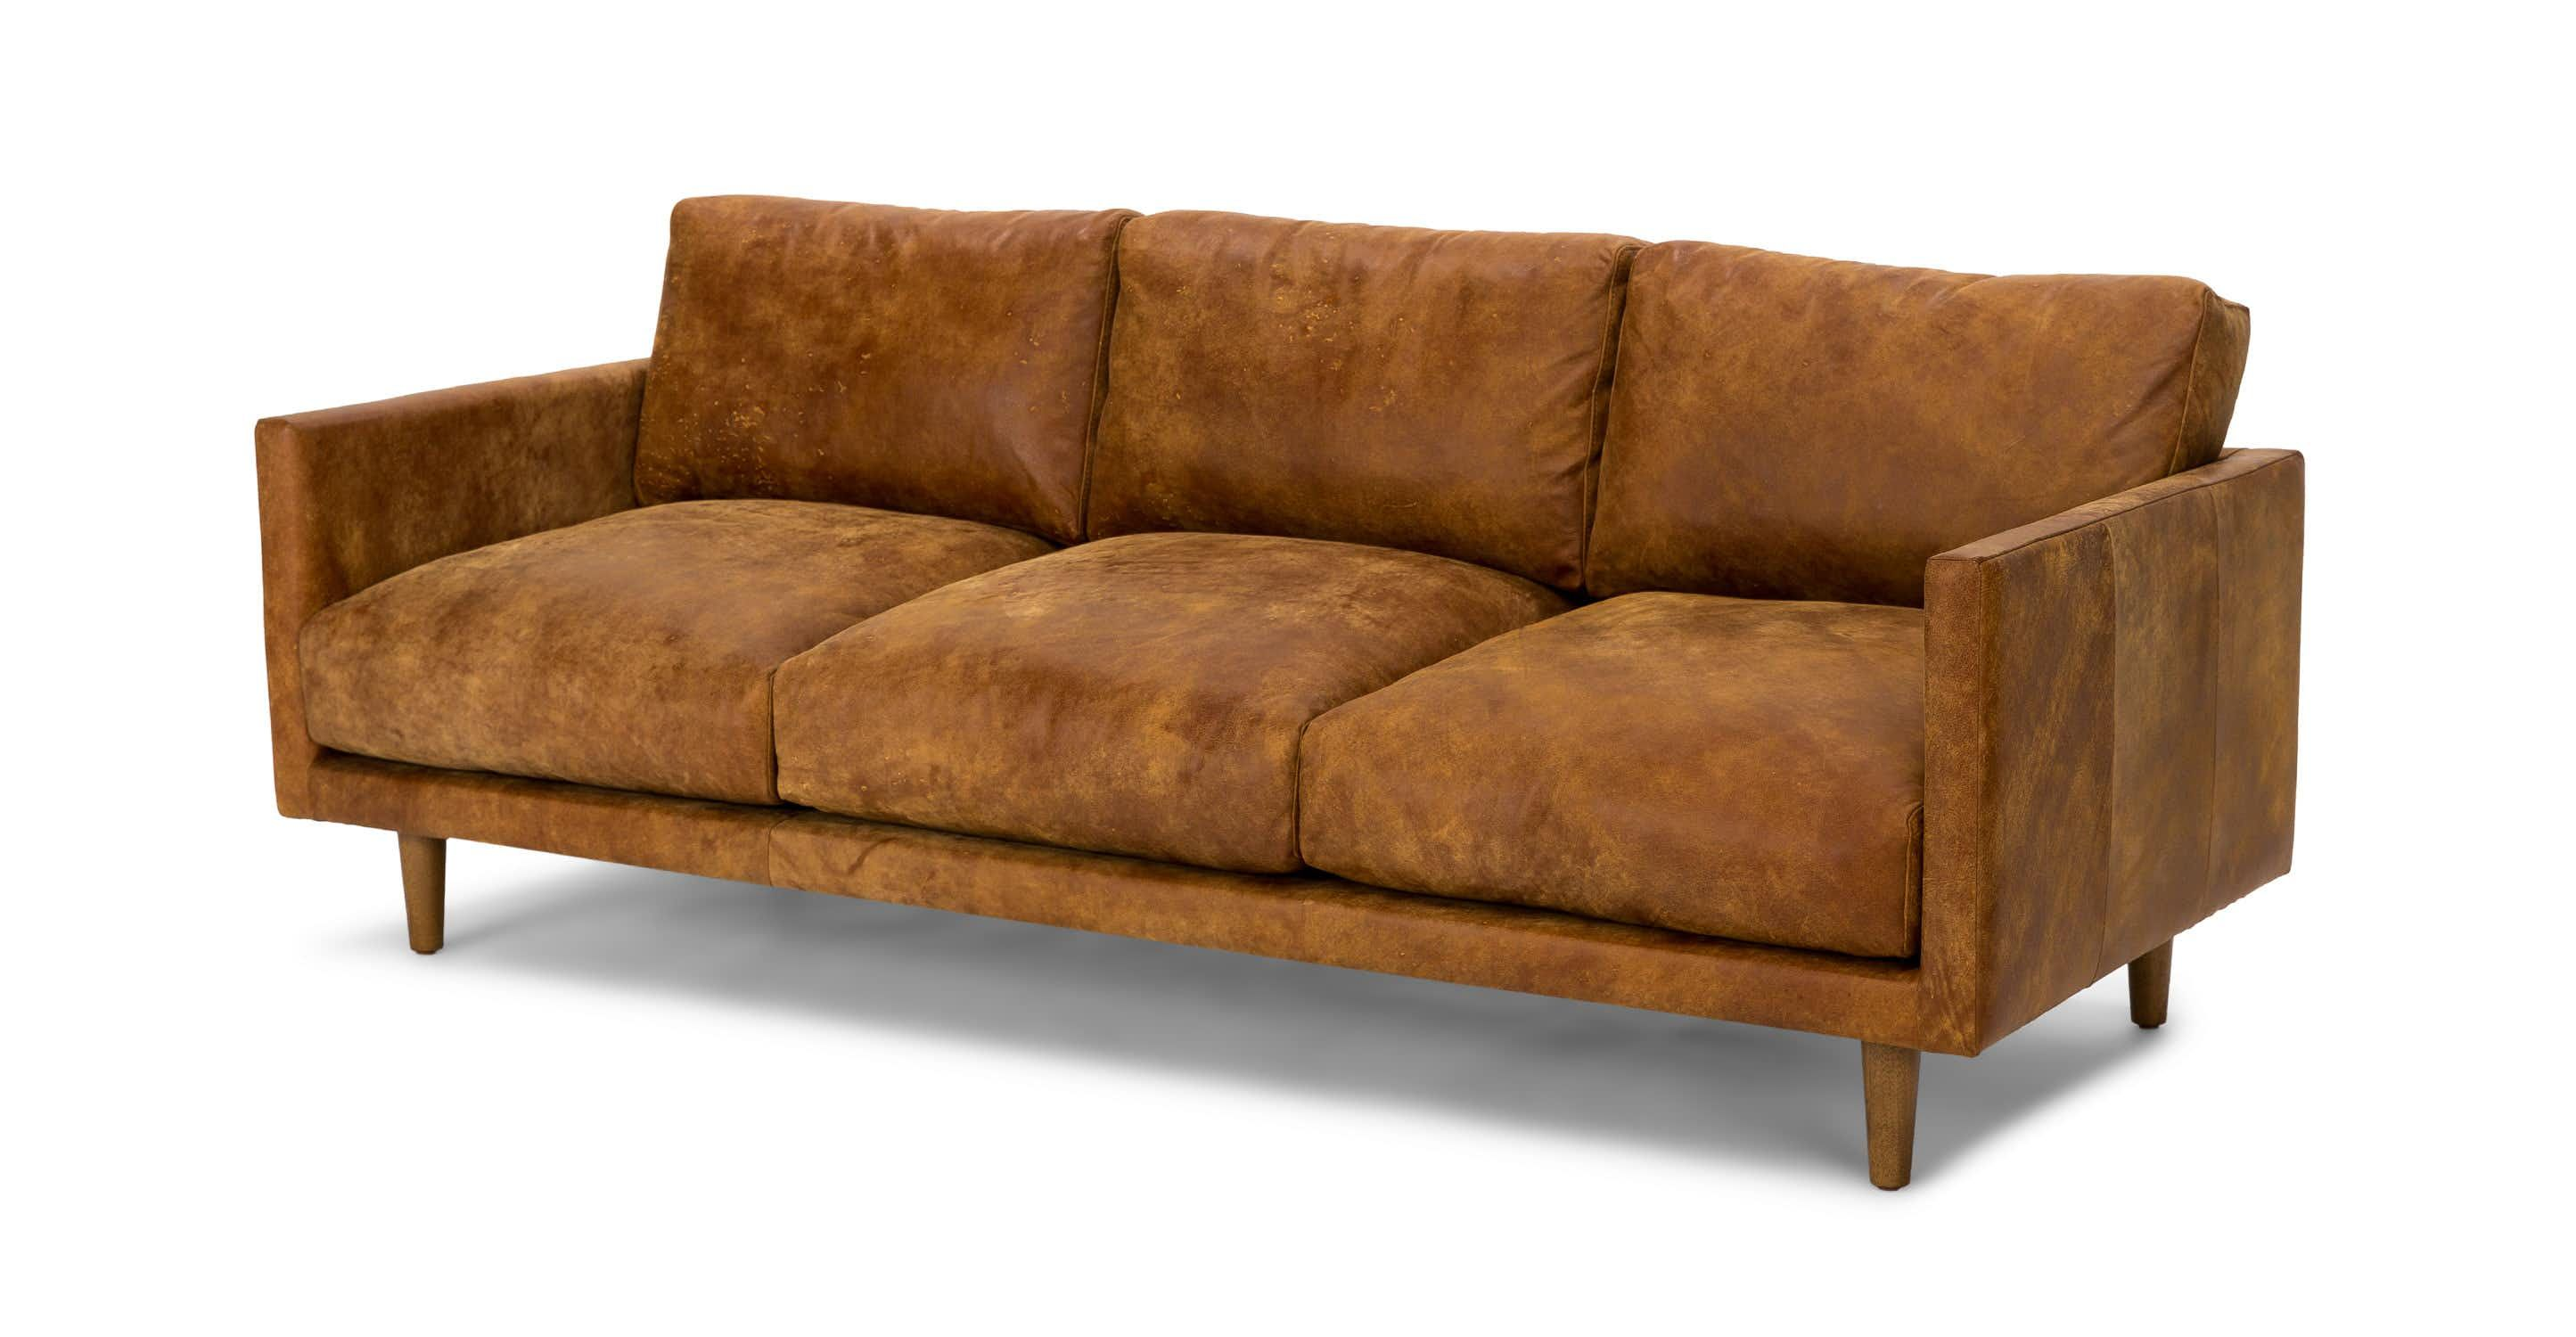 Outstanding Tan Brown Leather Sofa Upholstered Article Nirvana Machost Co Dining Chair Design Ideas Machostcouk